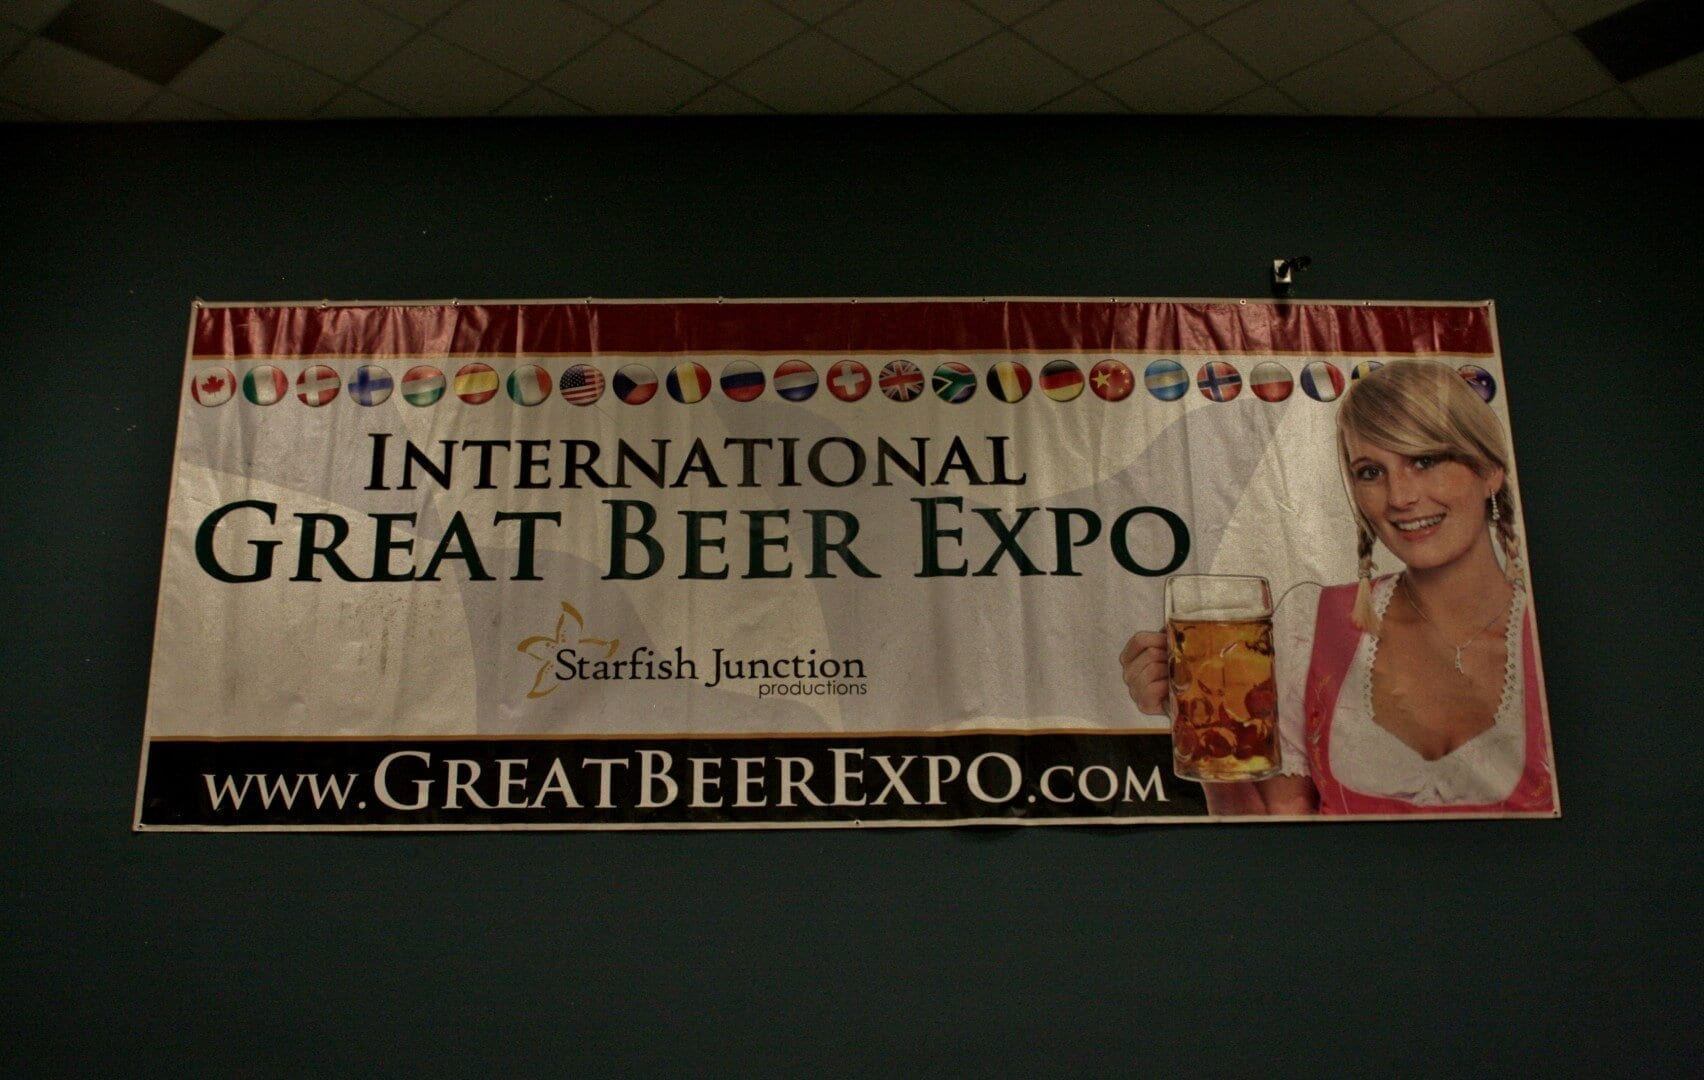 Great Beer Expo